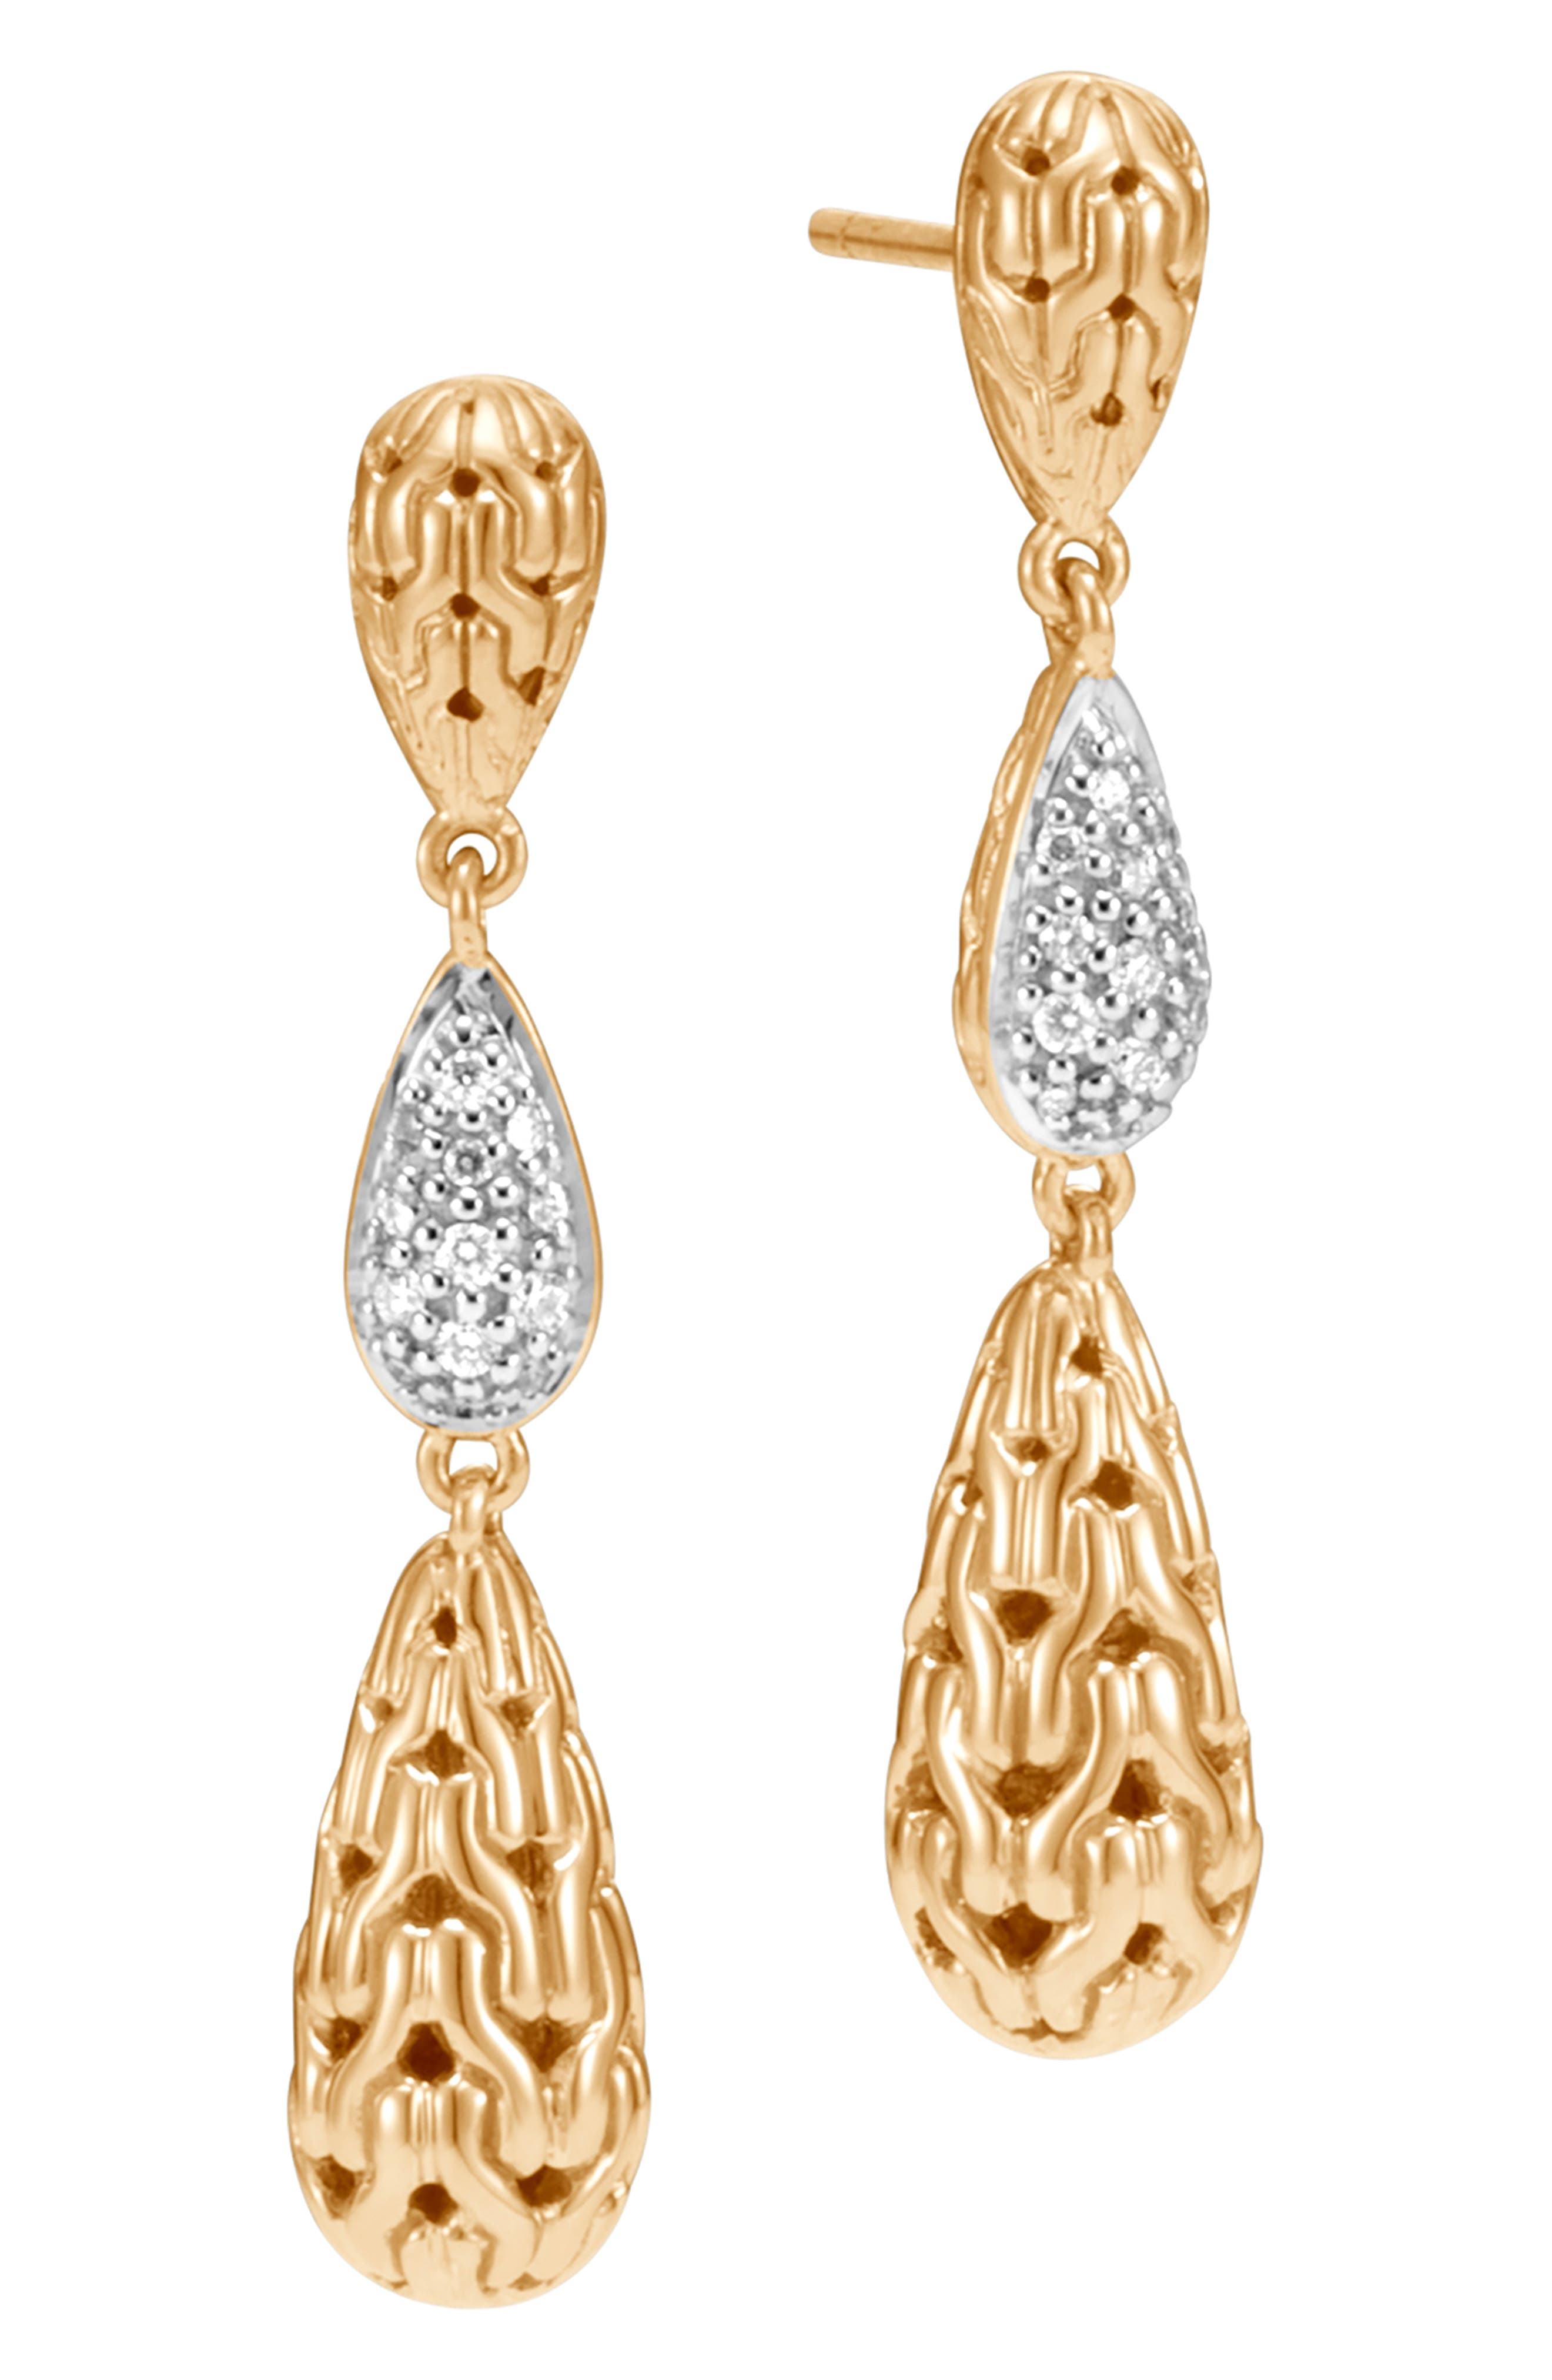 Classic Chain Gold Long Drop Earrings with Diamonds,                             Main thumbnail 1, color,                             GOLD/ DIAMOND